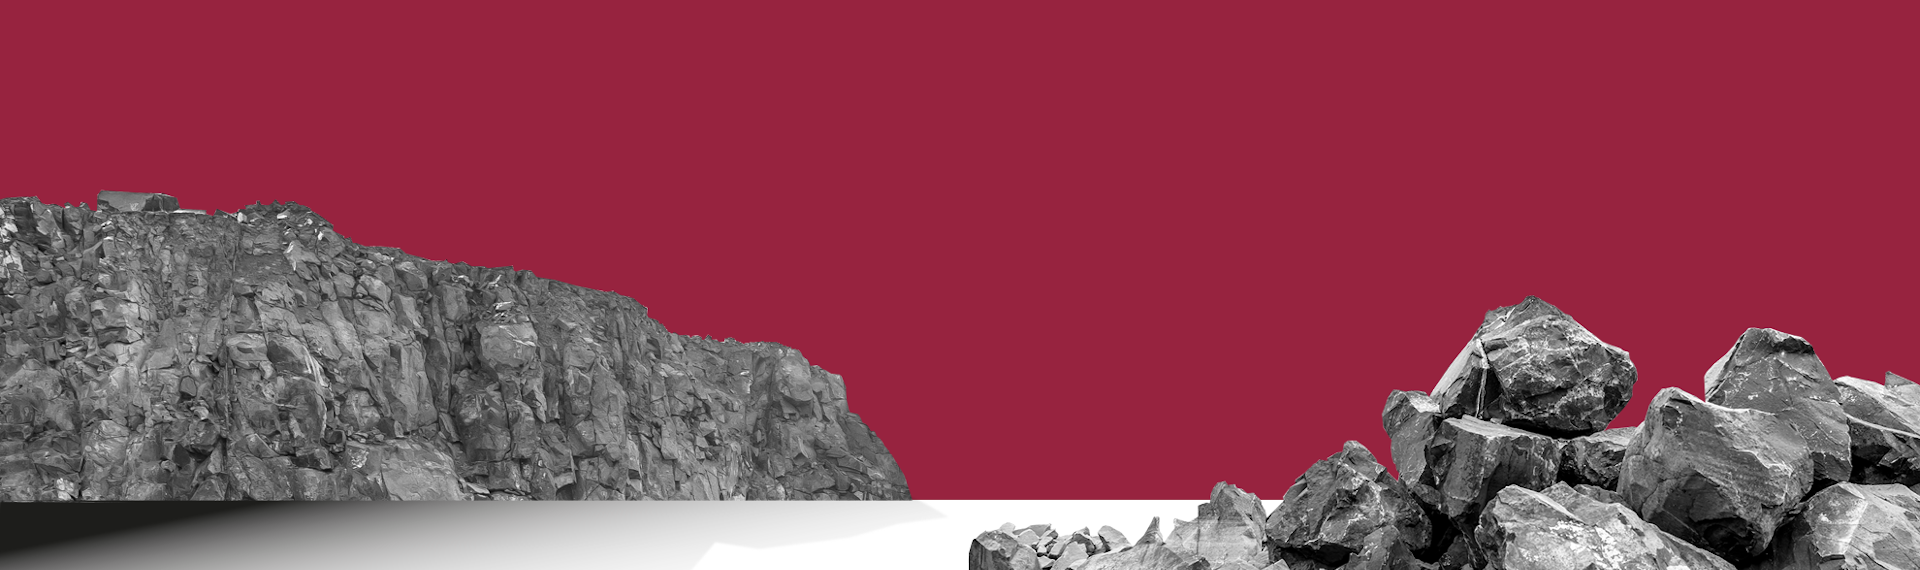 rocks on red background